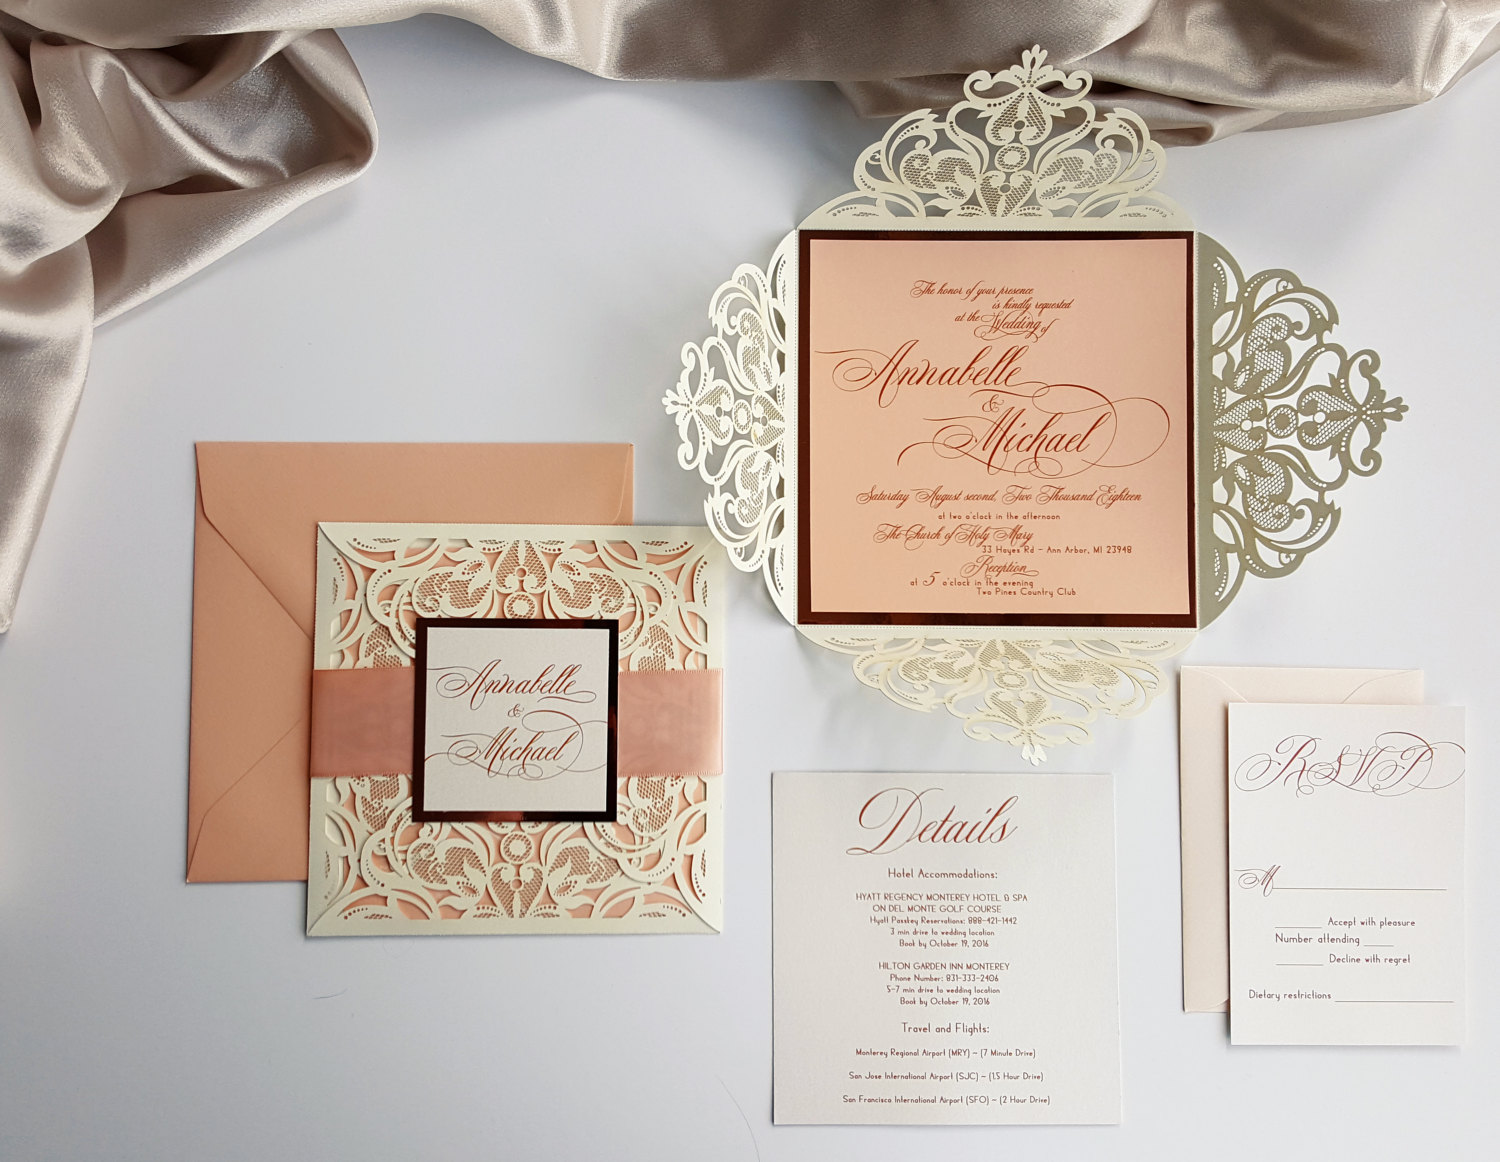 5 Calligraphy-Decorated Wedding Details That We Love